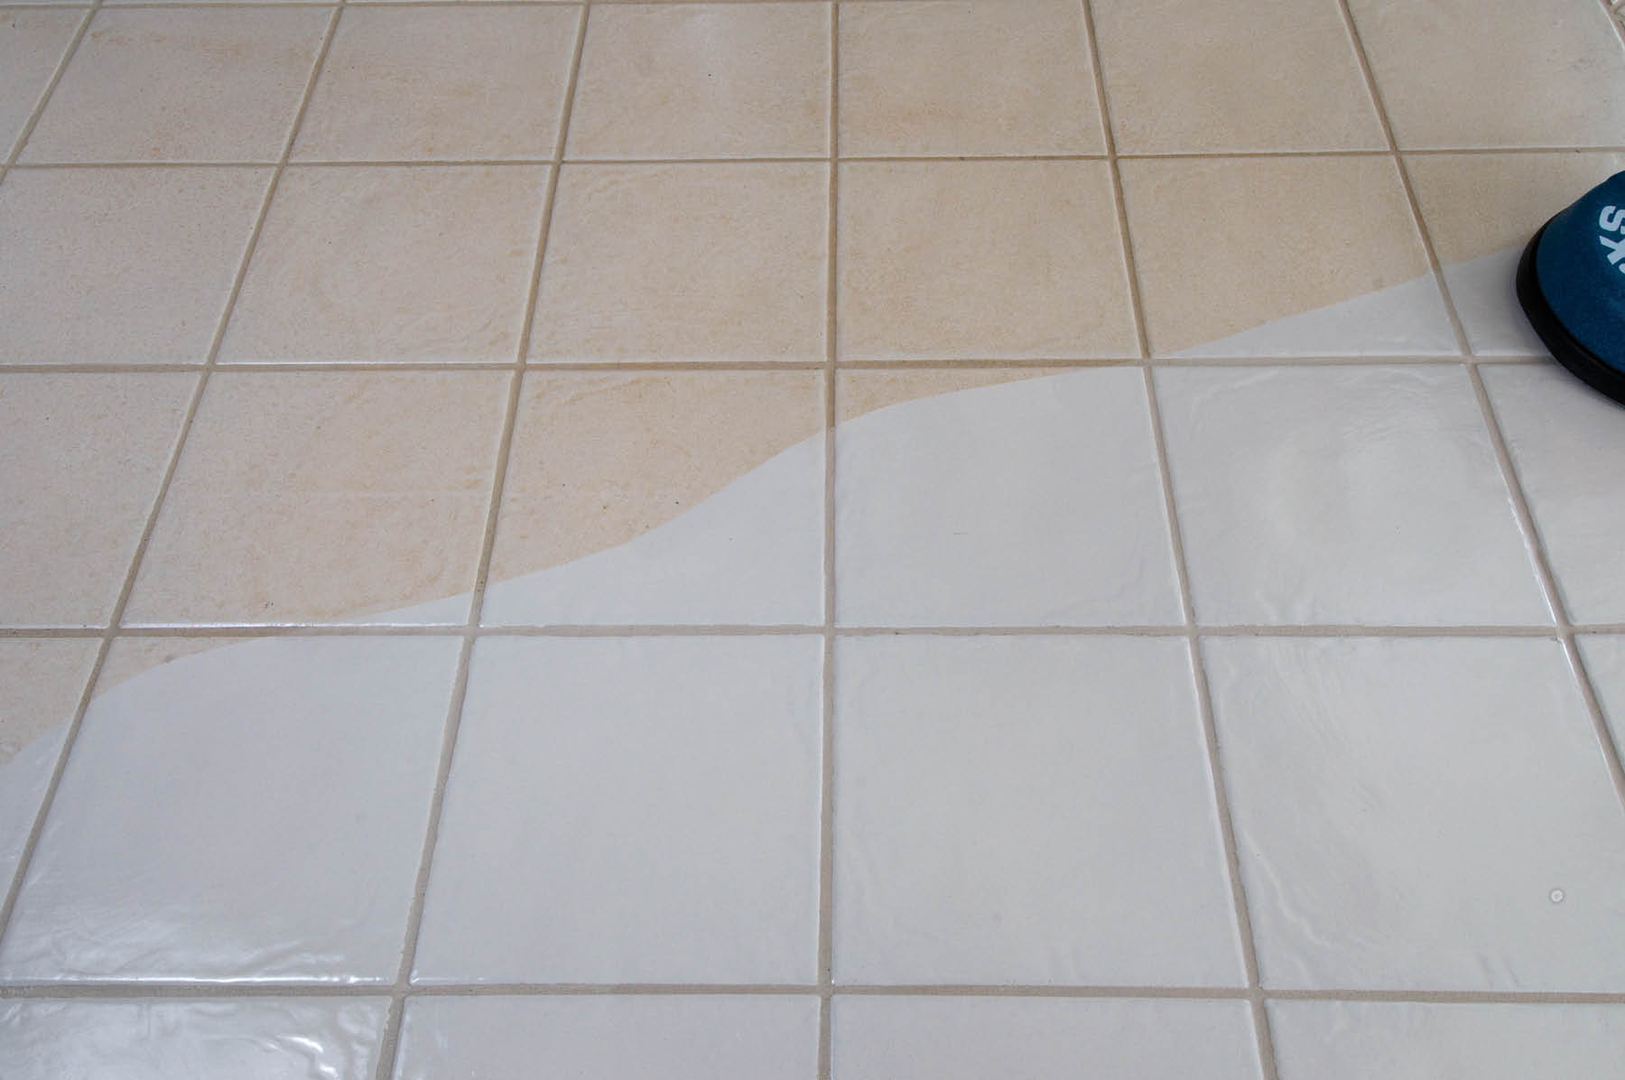 Avoid Health Risks With Regular Tile Grout Cleaning Pioneer